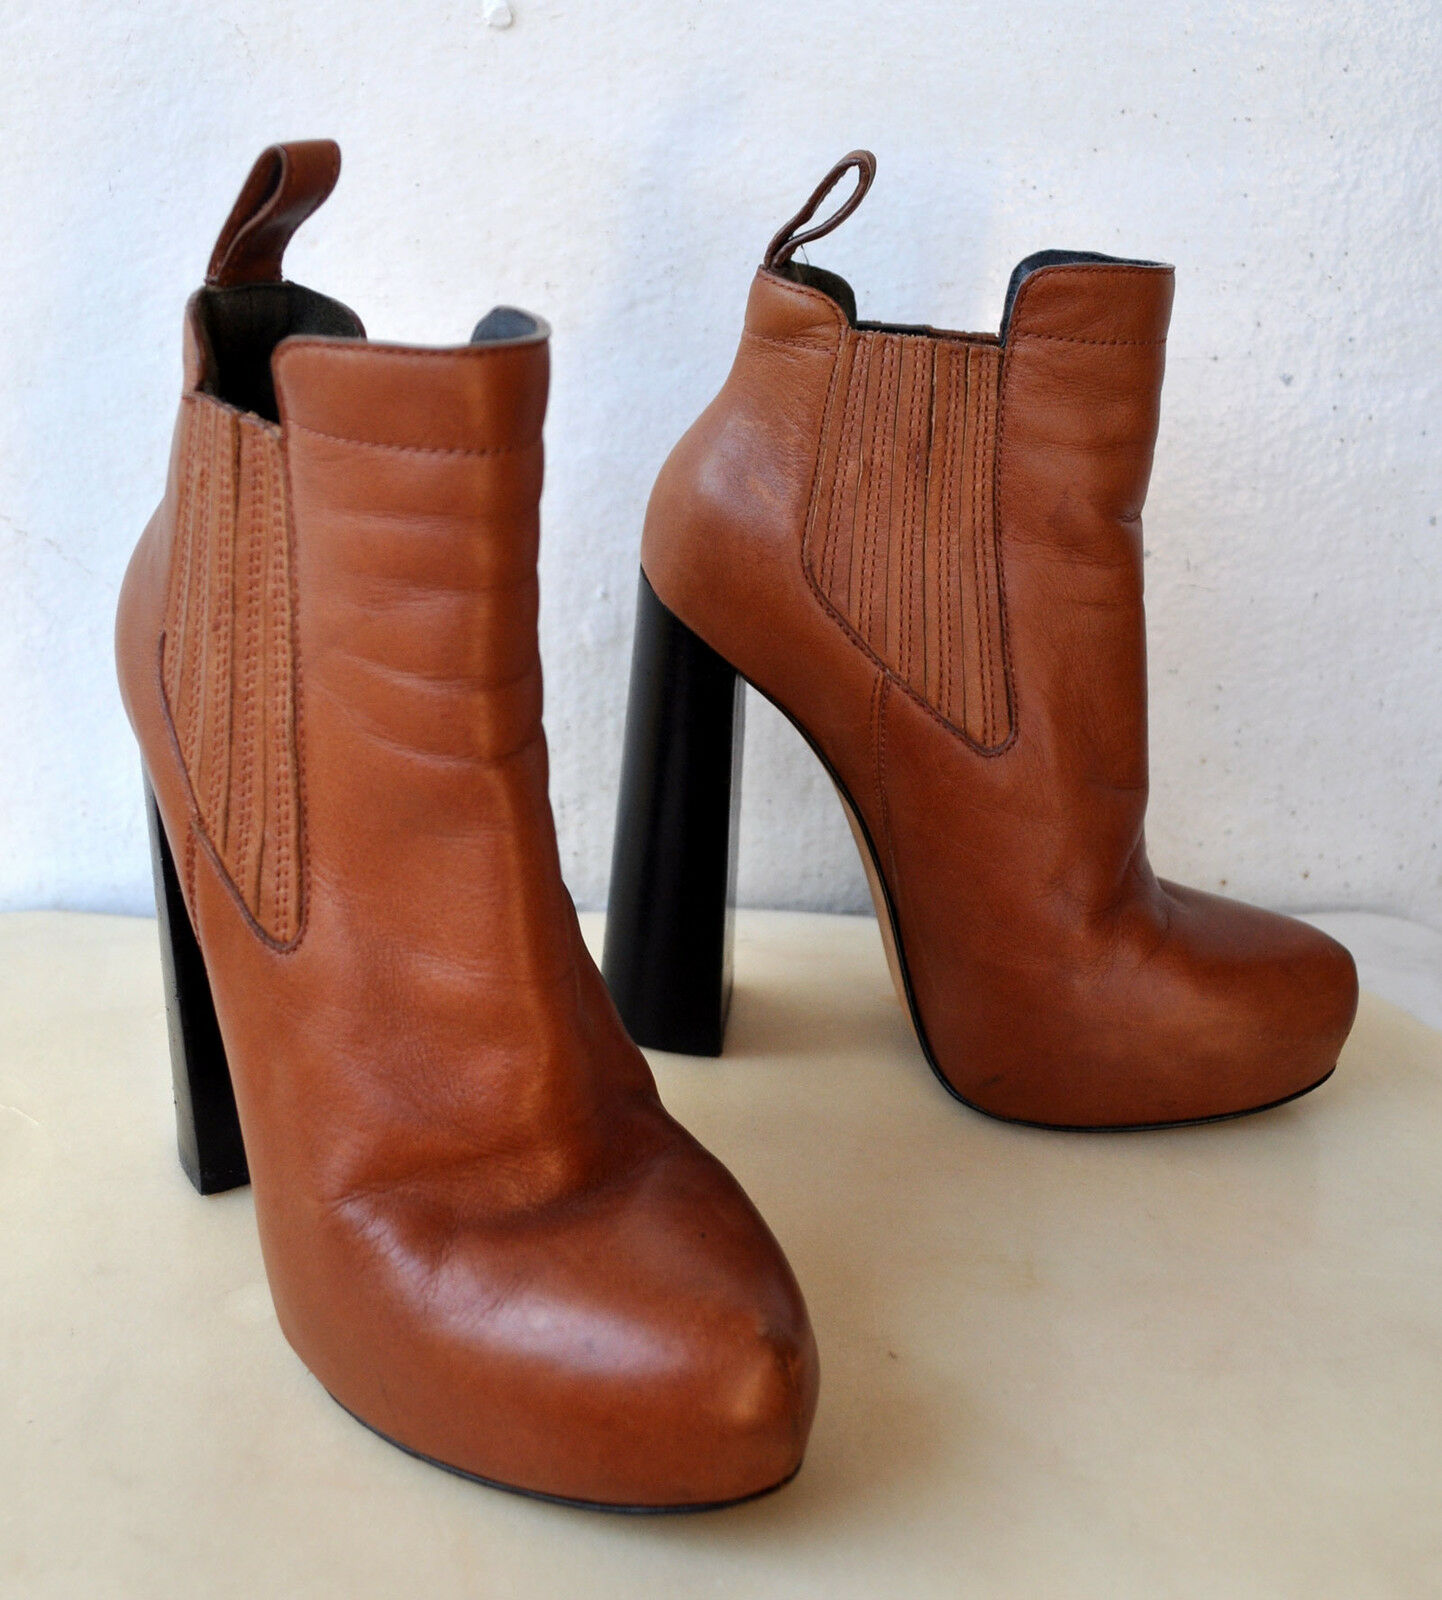 Alexander Wang Anabela Platform Chelsea Tan Leather Ankle Boots Sz 36 Sold Out